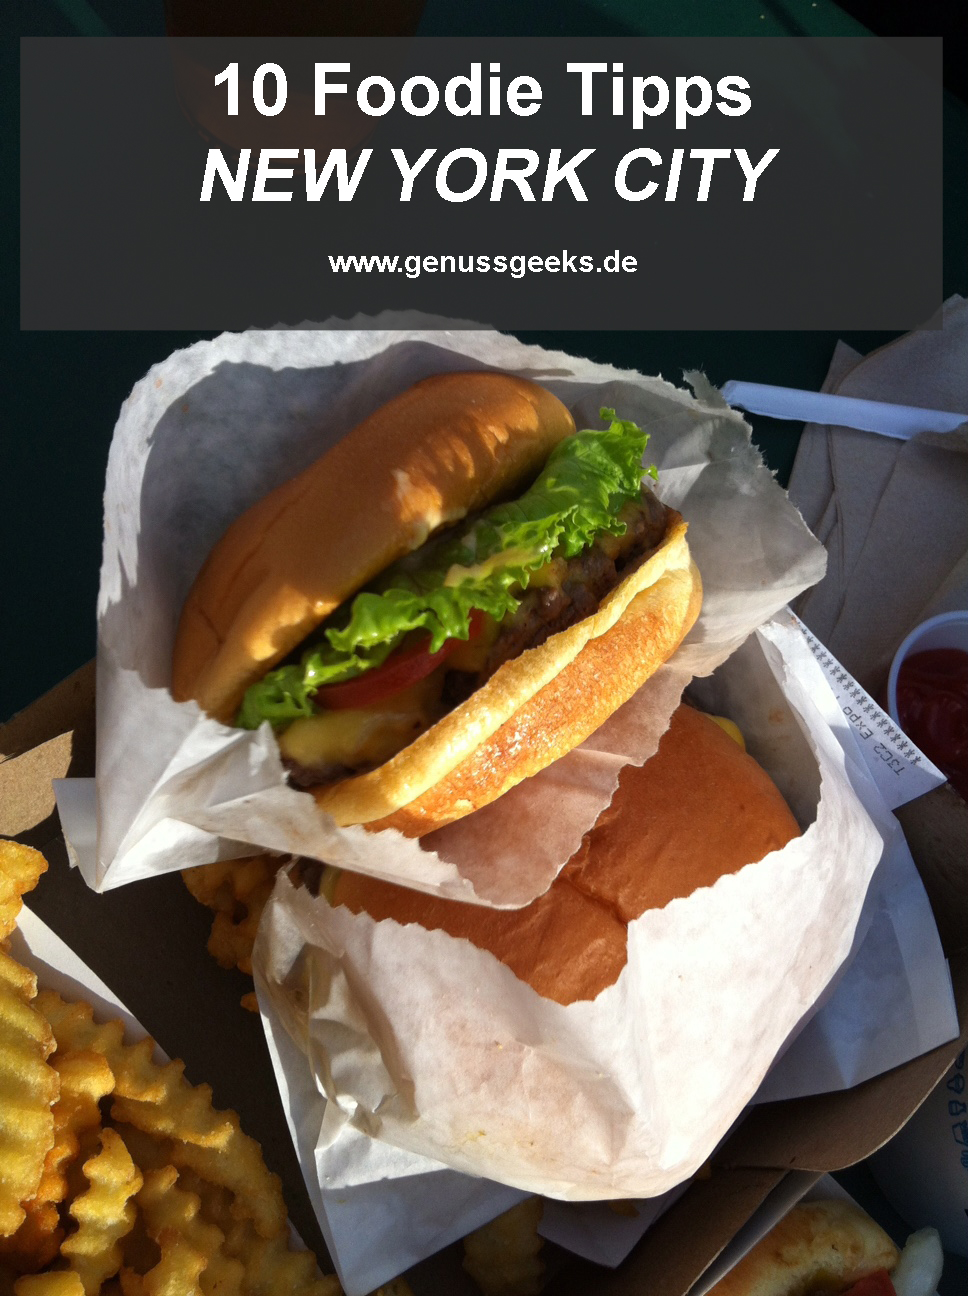 foodie tips nyc